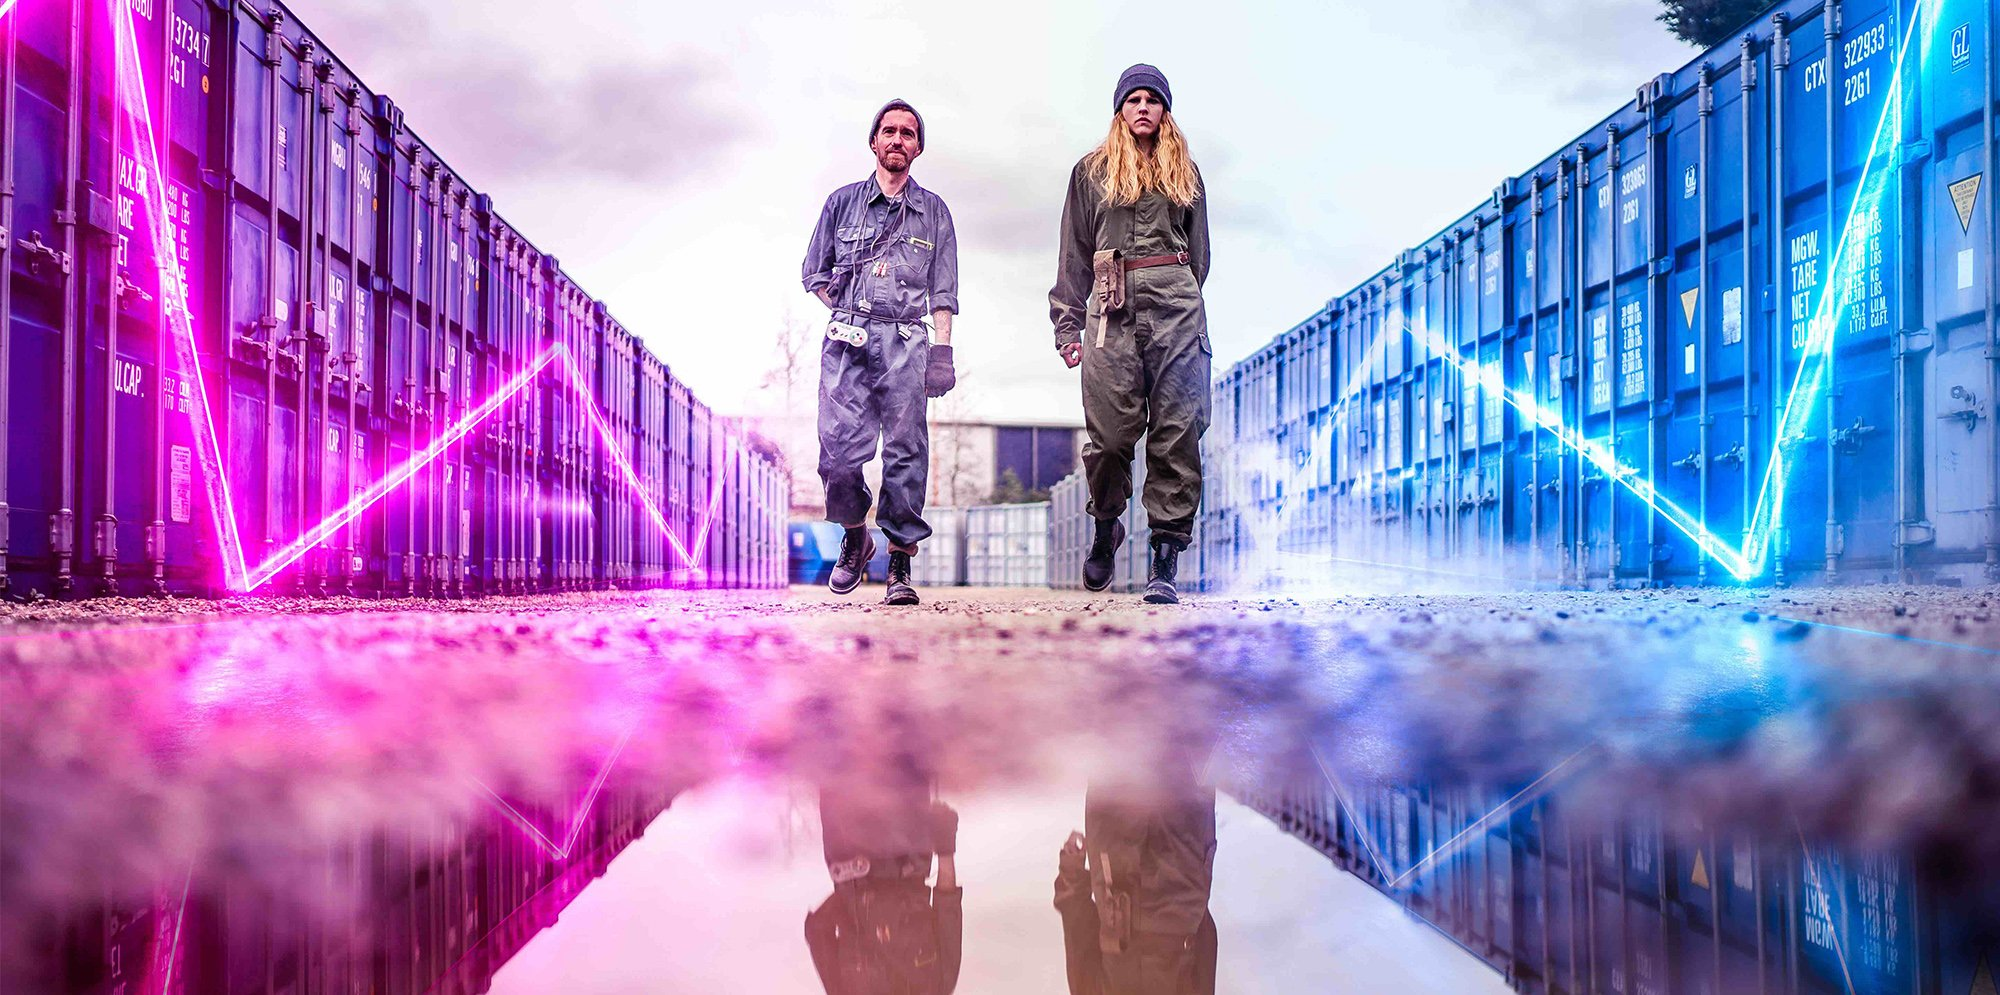 Two performers dressed in boiler suits are in an industrial space with blue and pink neon lights, they are reflected in a puddle of water